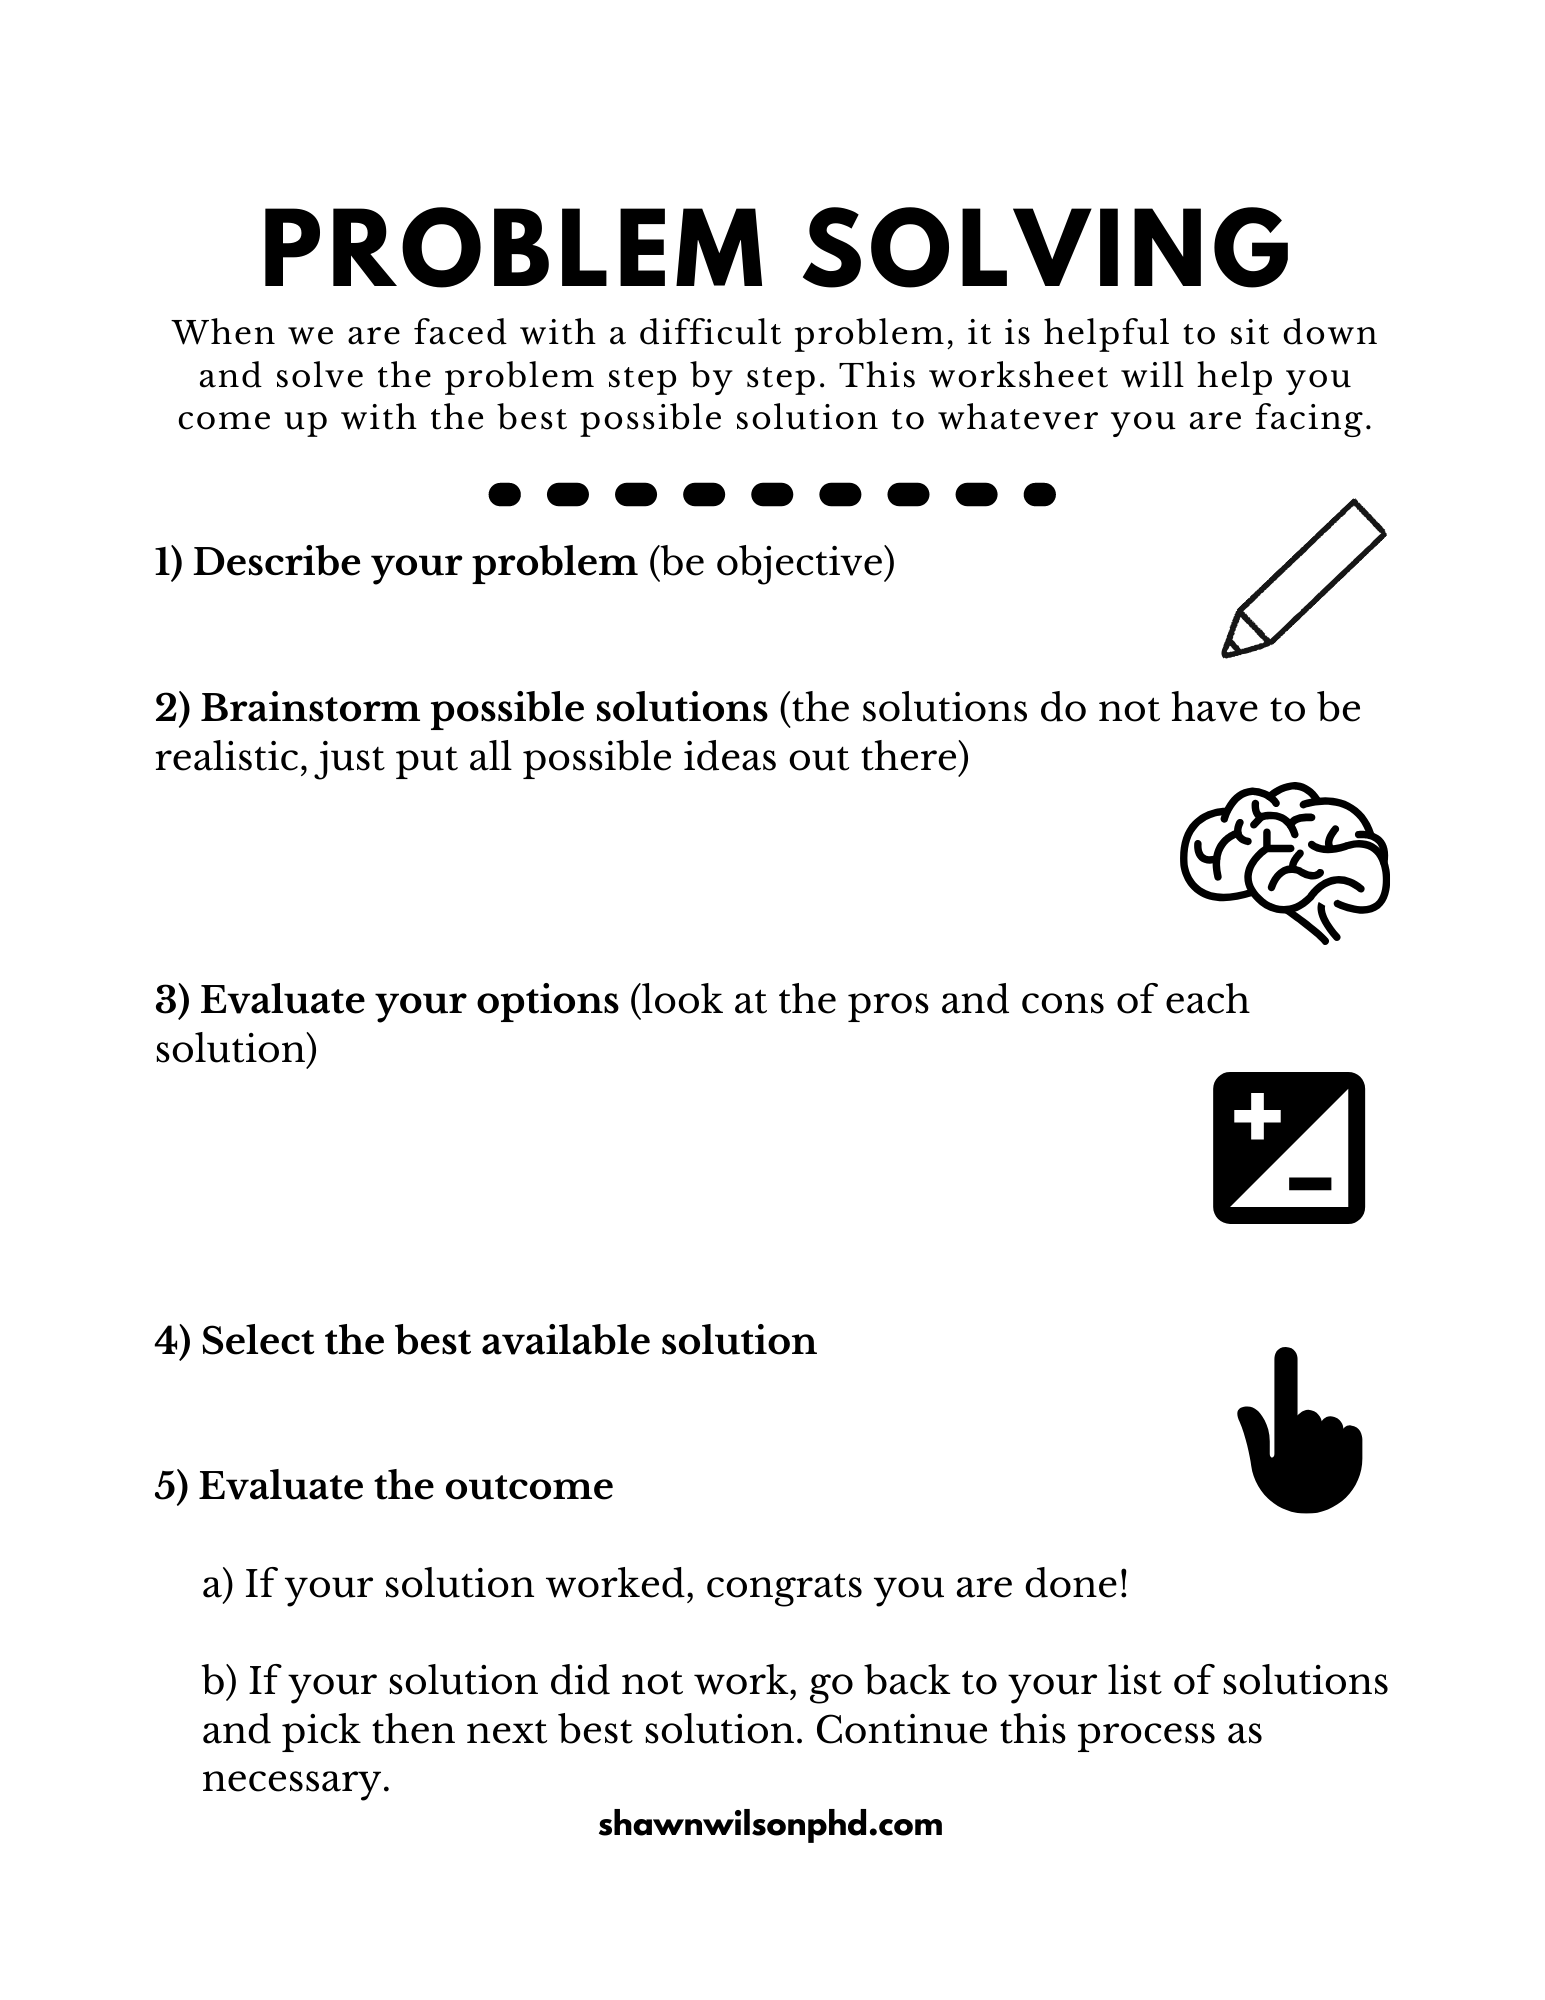 New Worksheets Behavior Activation And Problem Solving